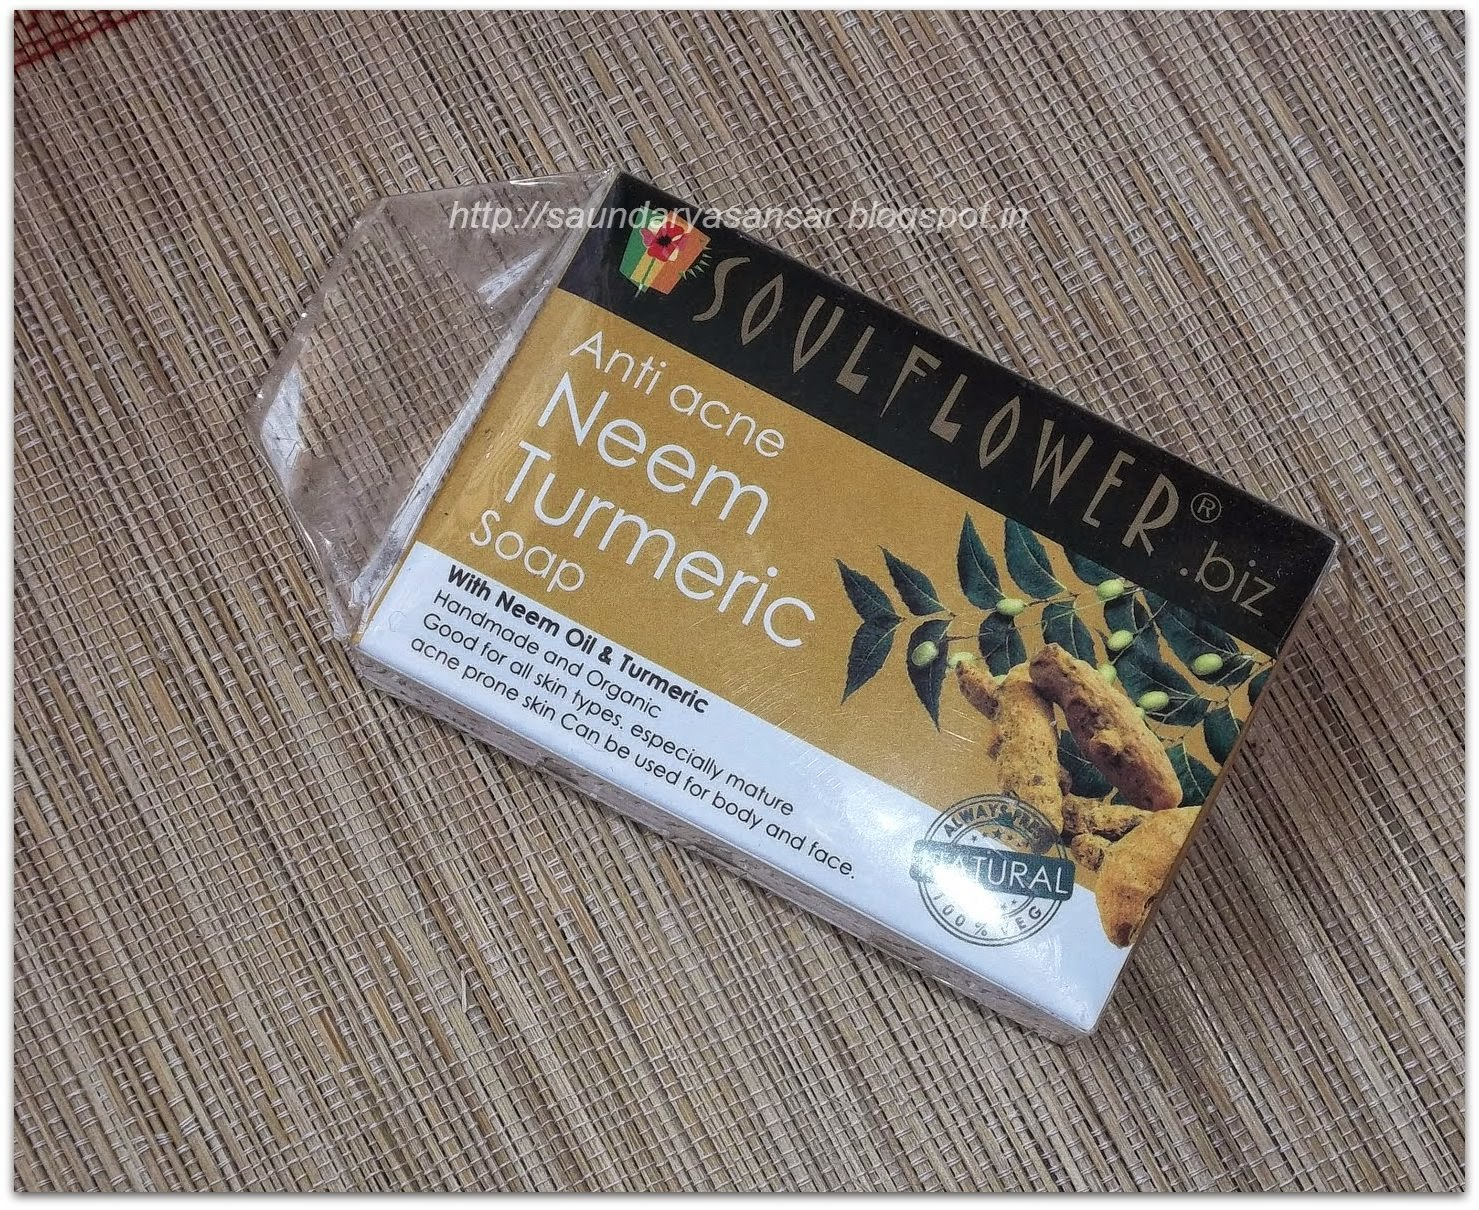 Soulflower Anti Acne Neem & Turmeric Soap- Review